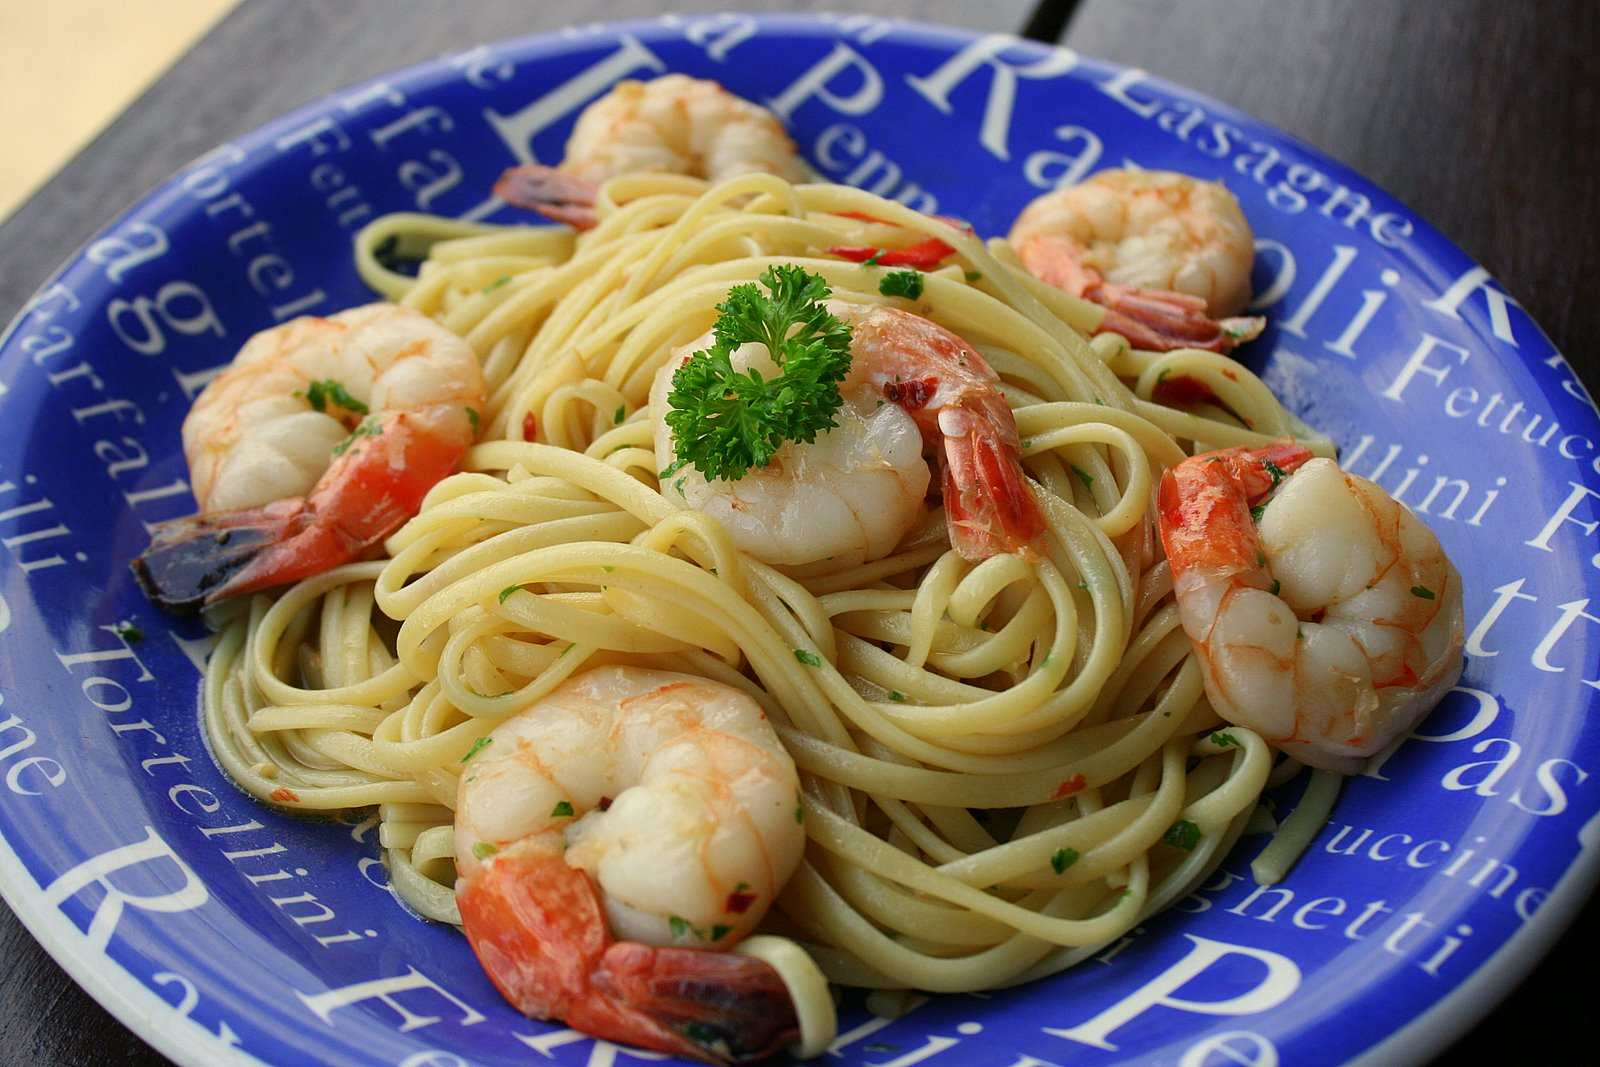 Prawn linguini aglio olio style with garlic and chili